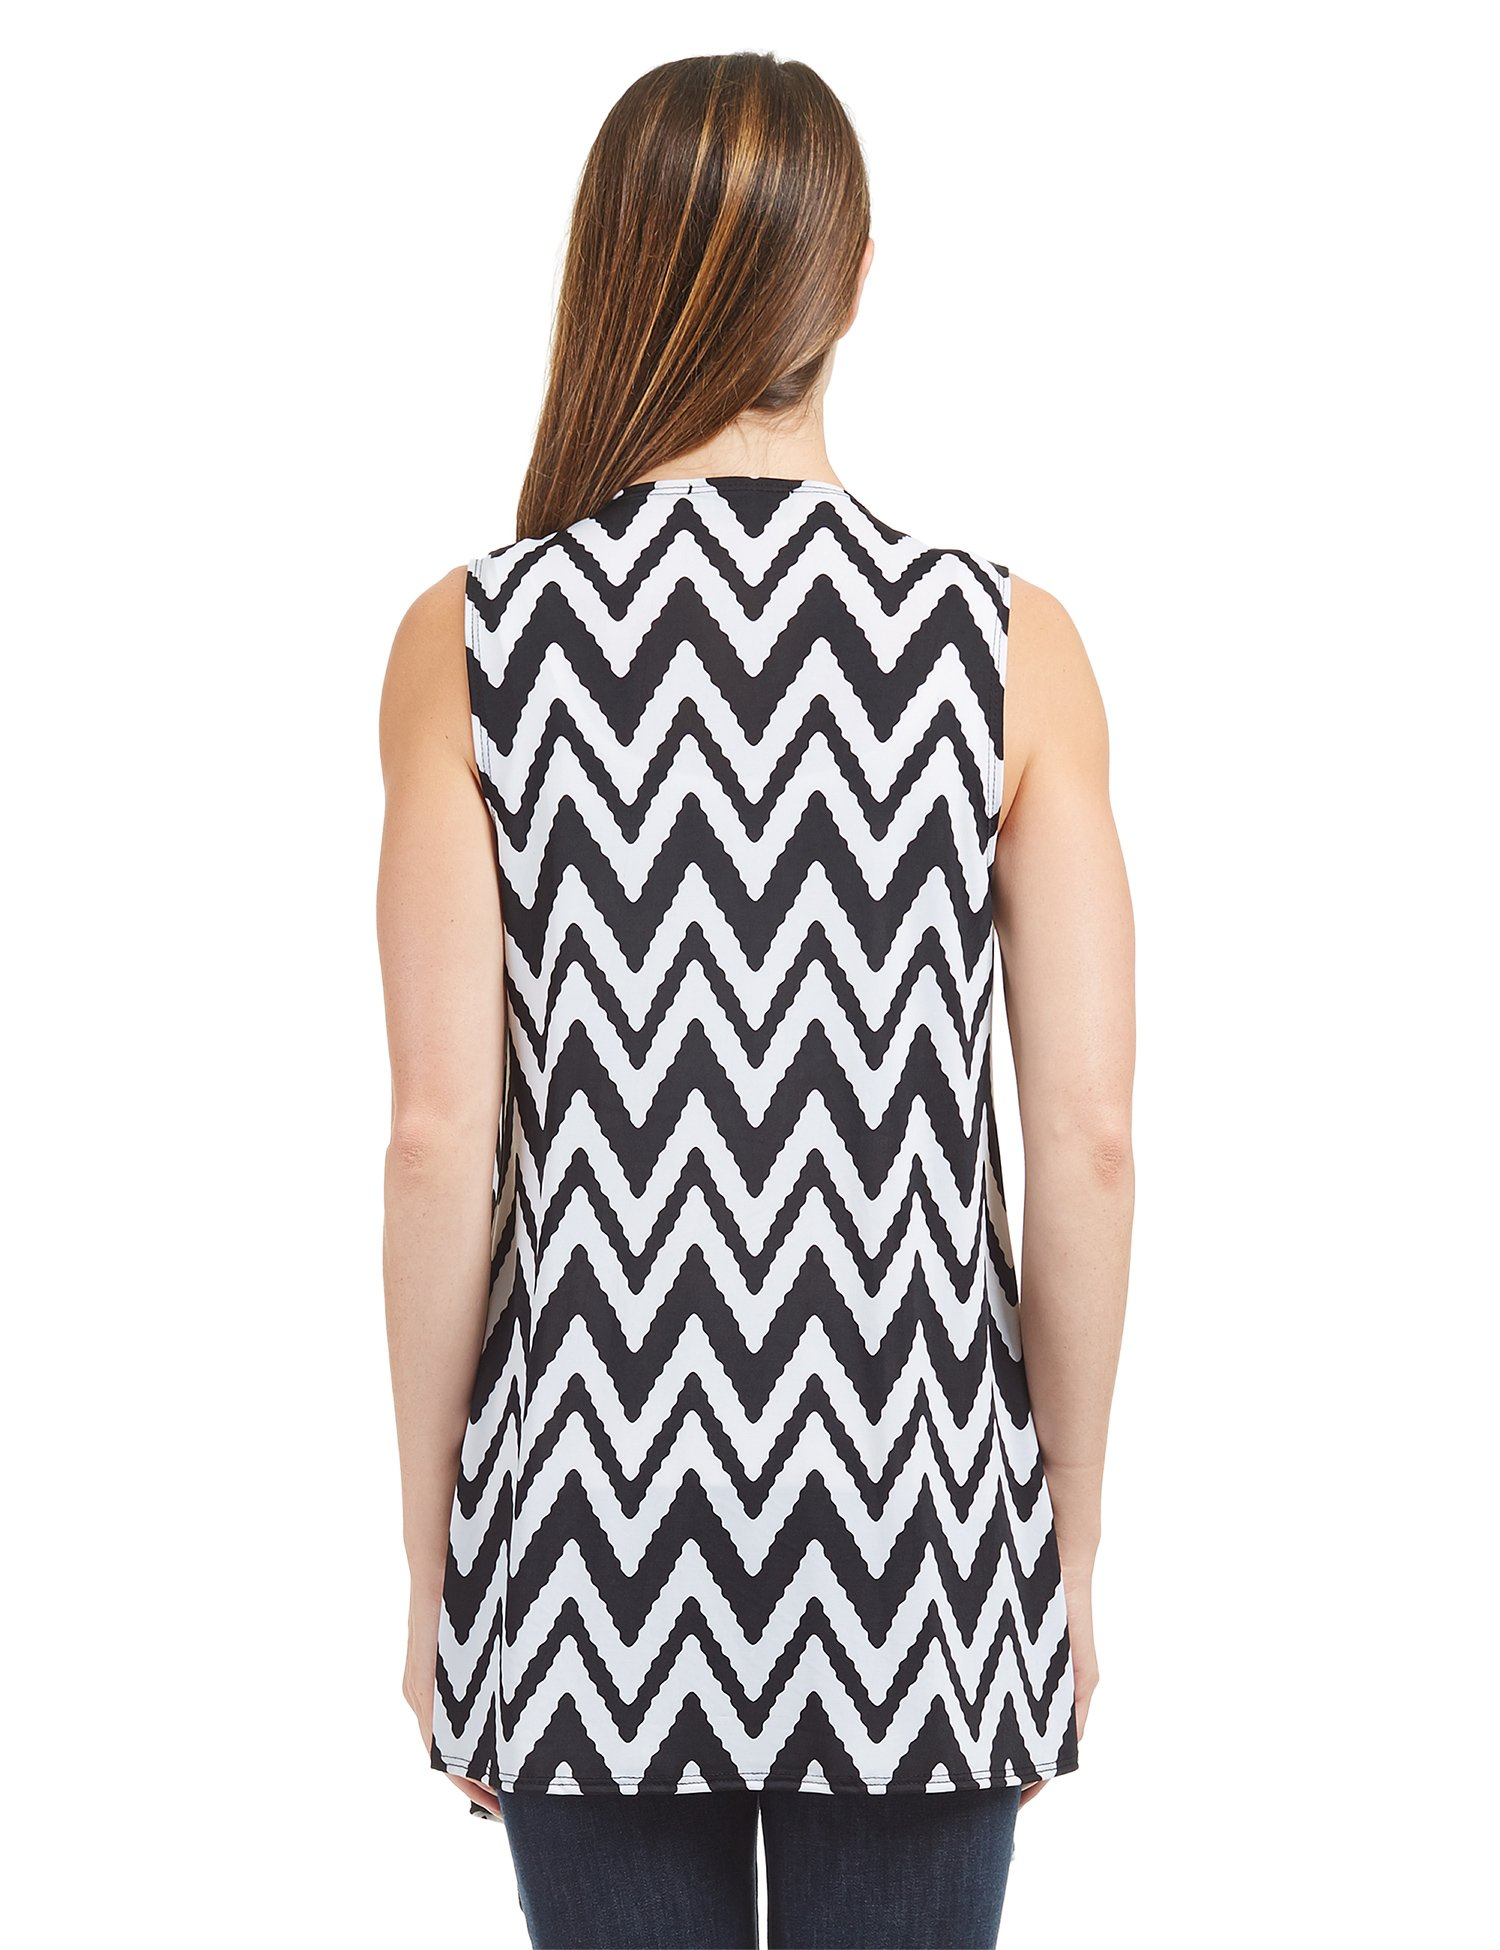 Lock and Love WSK1350 Womens Lightweight Print Draped Sleeveless Cardigan XXXL CHEV_Black by Lock and Love (Image #4)